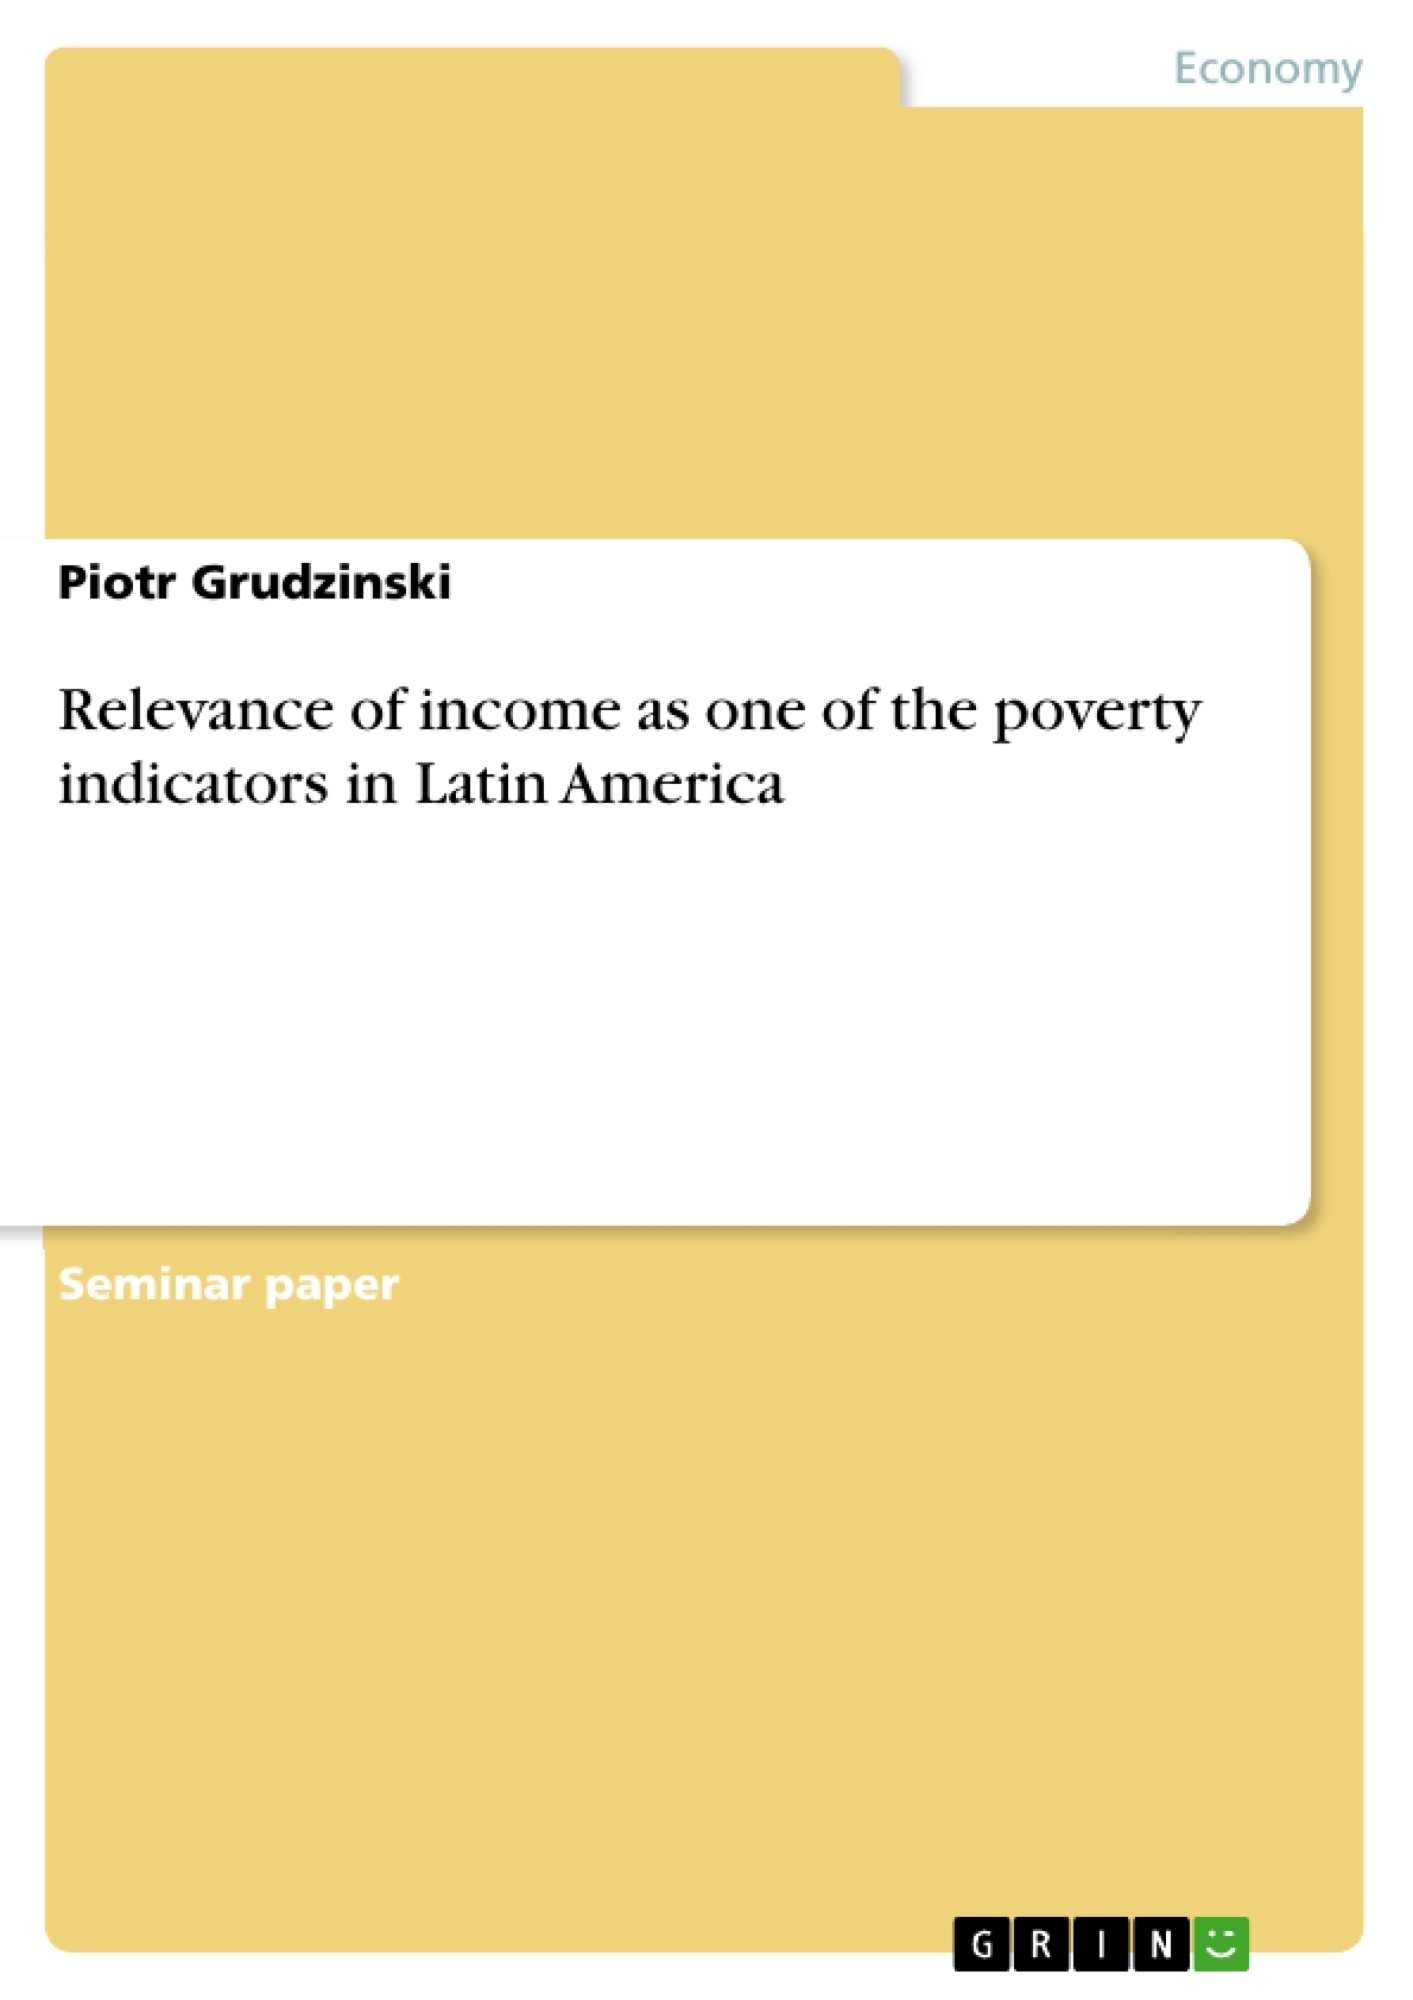 Title: Relevance of income as one of the poverty indicators in Latin America